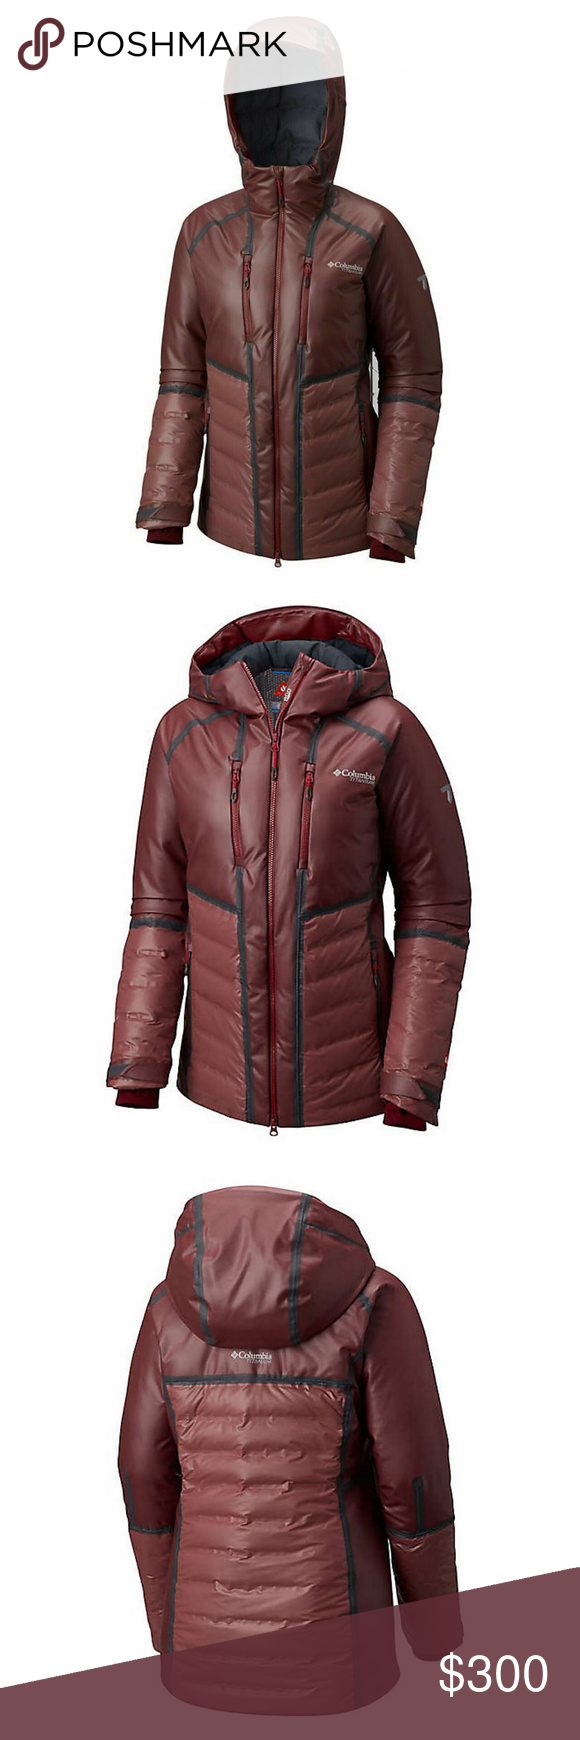 Nwt Womens Columbia Outdry Ex Diamond Piste Jacket Size M Dark Wine Outdry Extreme Waterproof Breathable Fully Seam Sealed Omni Heat Jackets Columbia Women